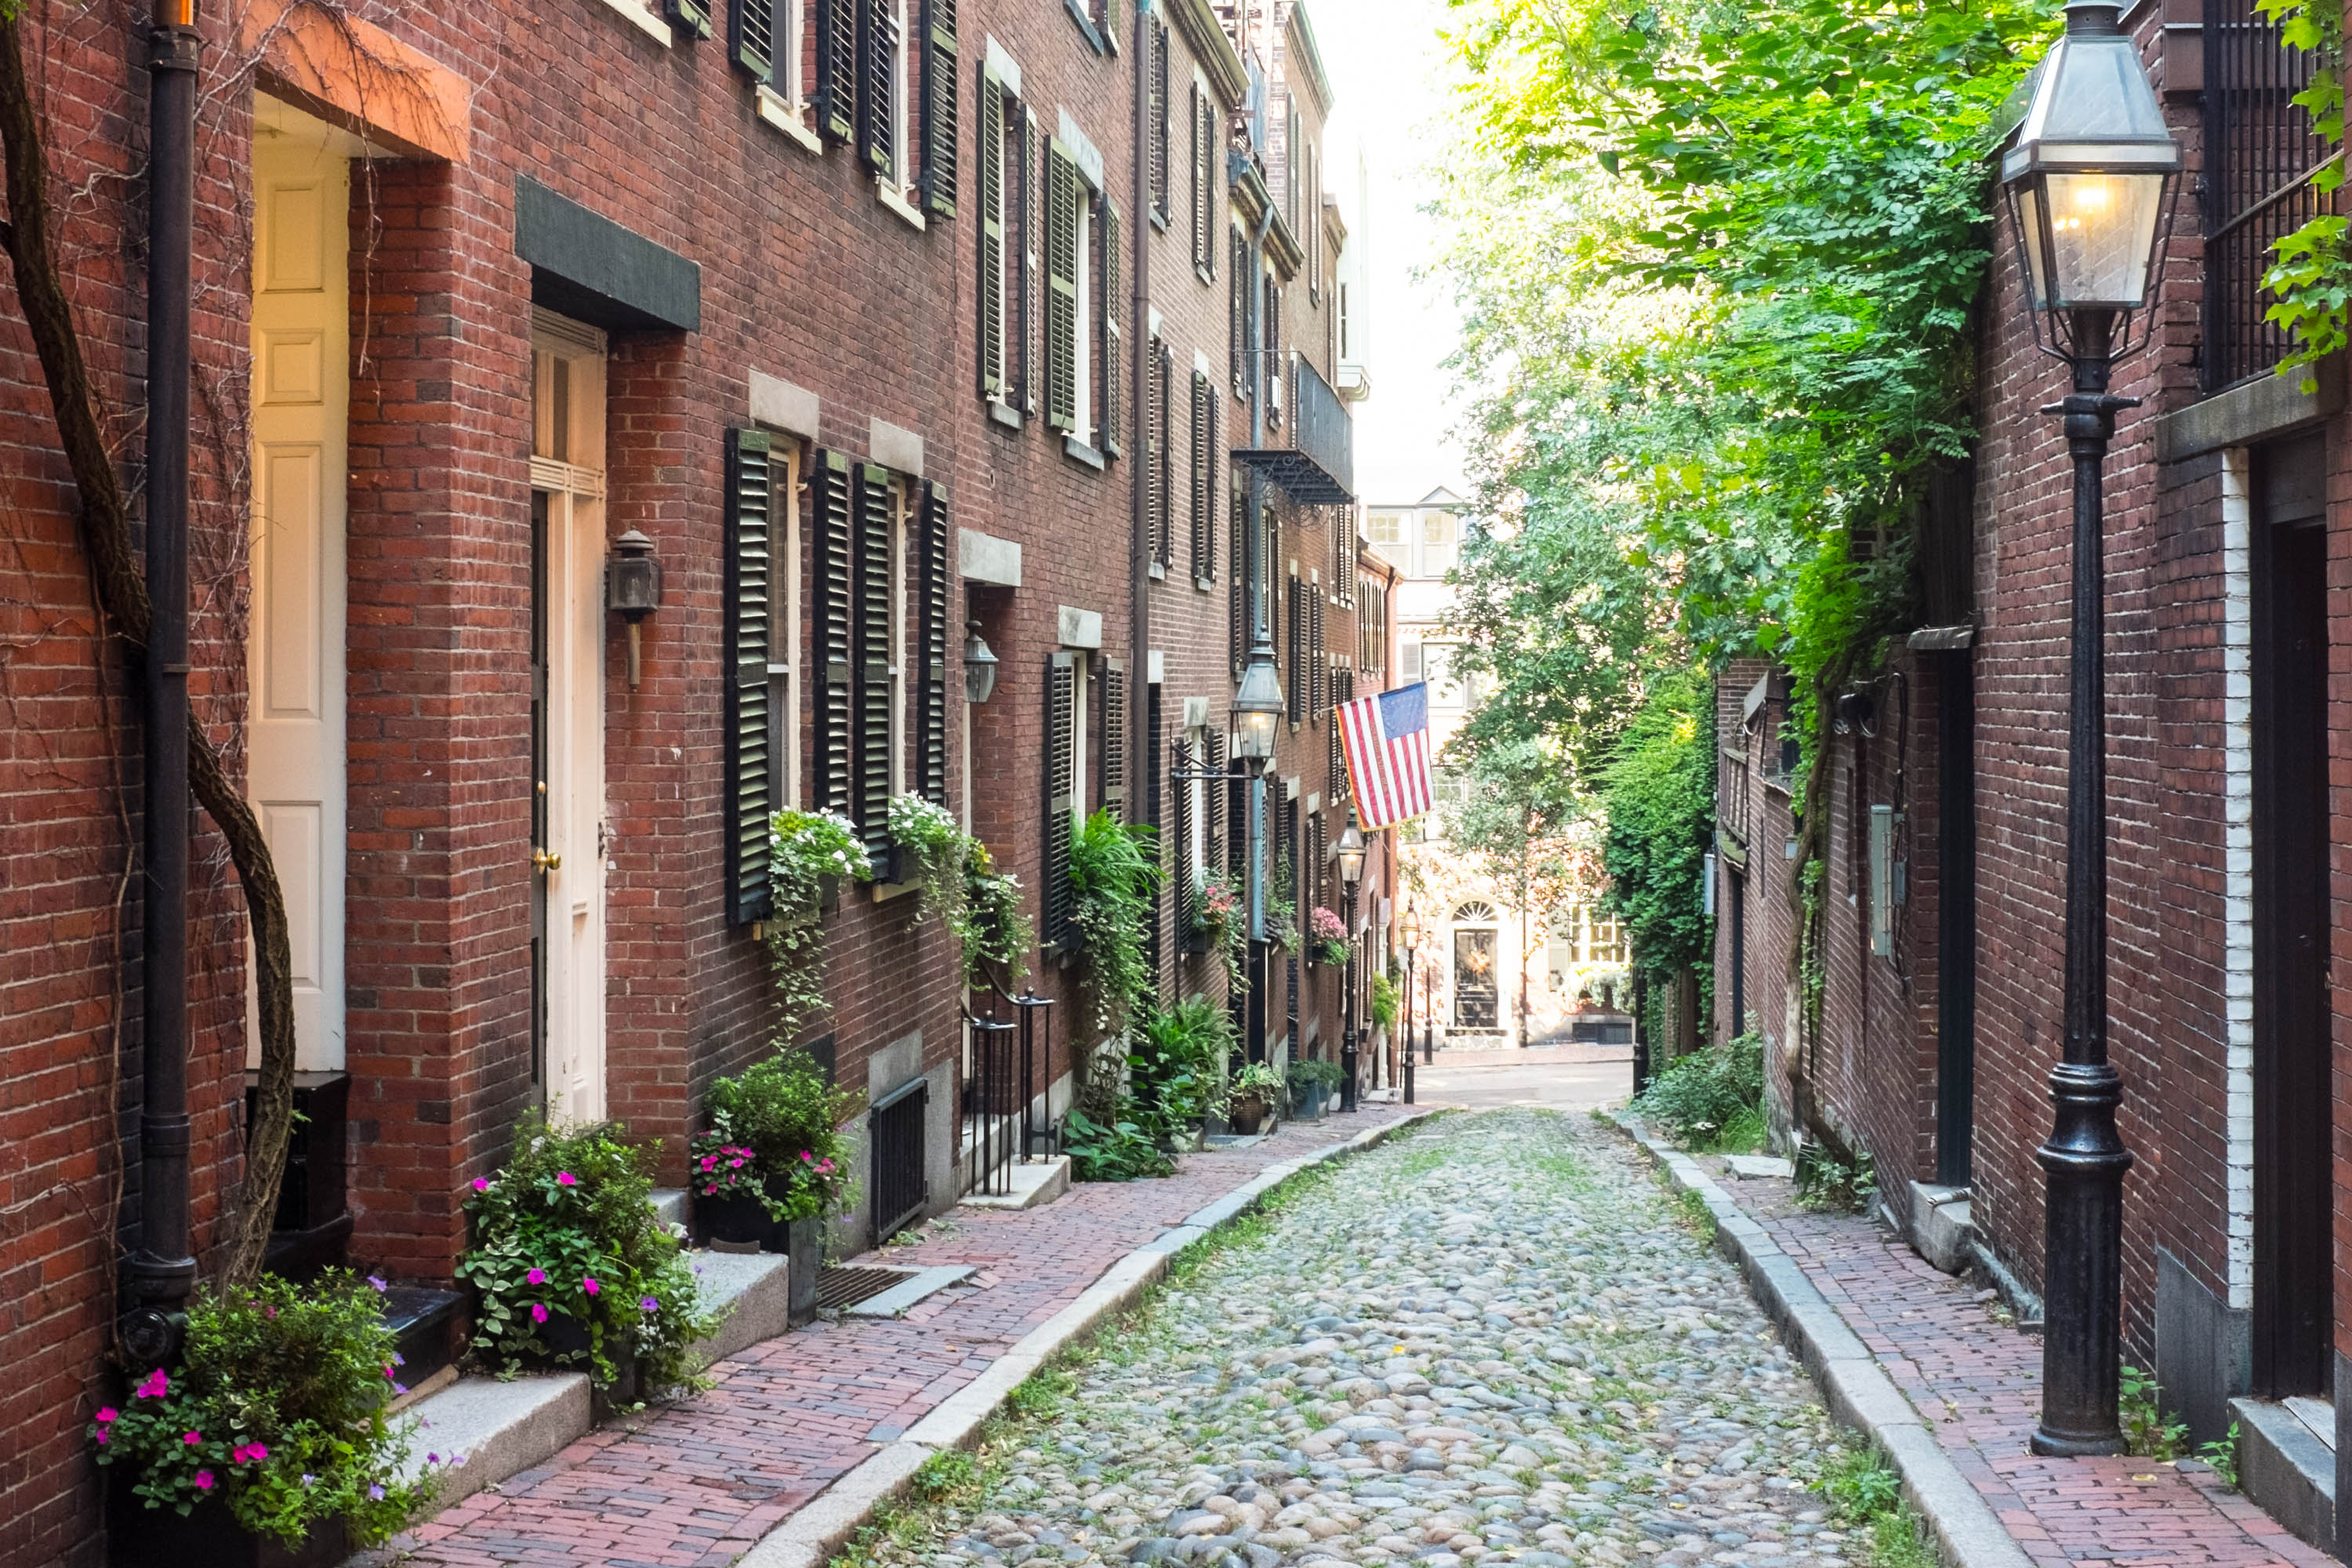 New England Charm: A Self-Guided Walking Tour in Boston